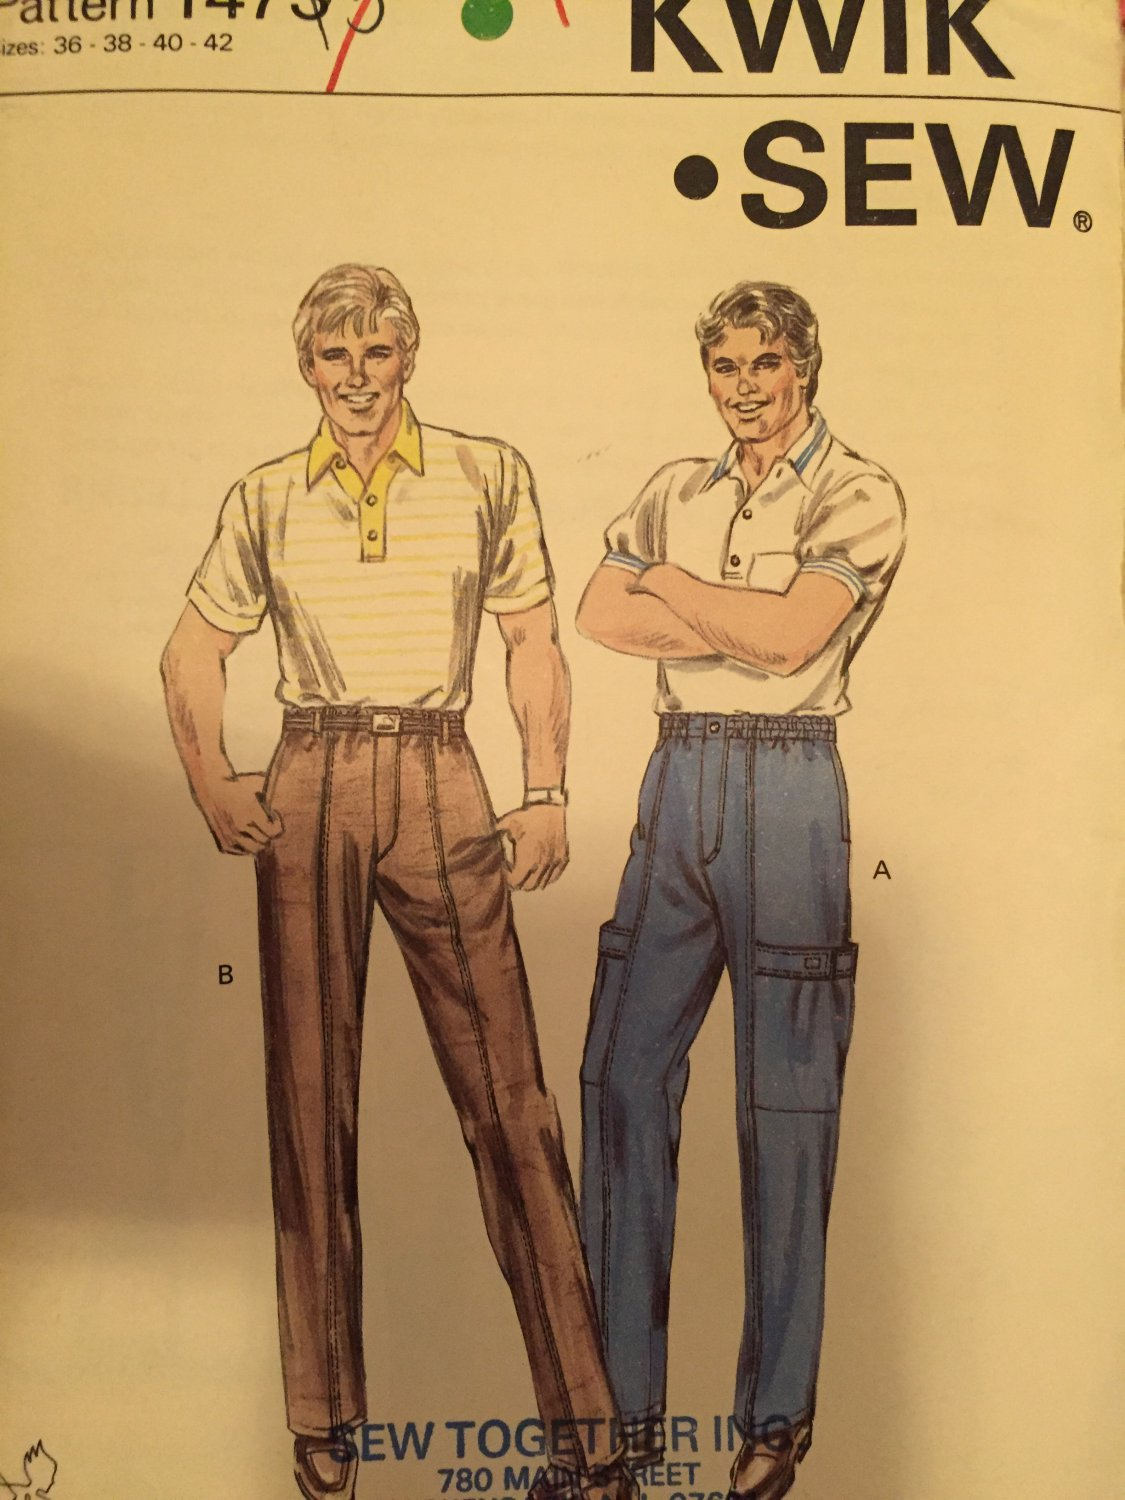 Men's Pants Kwik Sew 1473 Size 36-38-40-42 Sewing Pattern